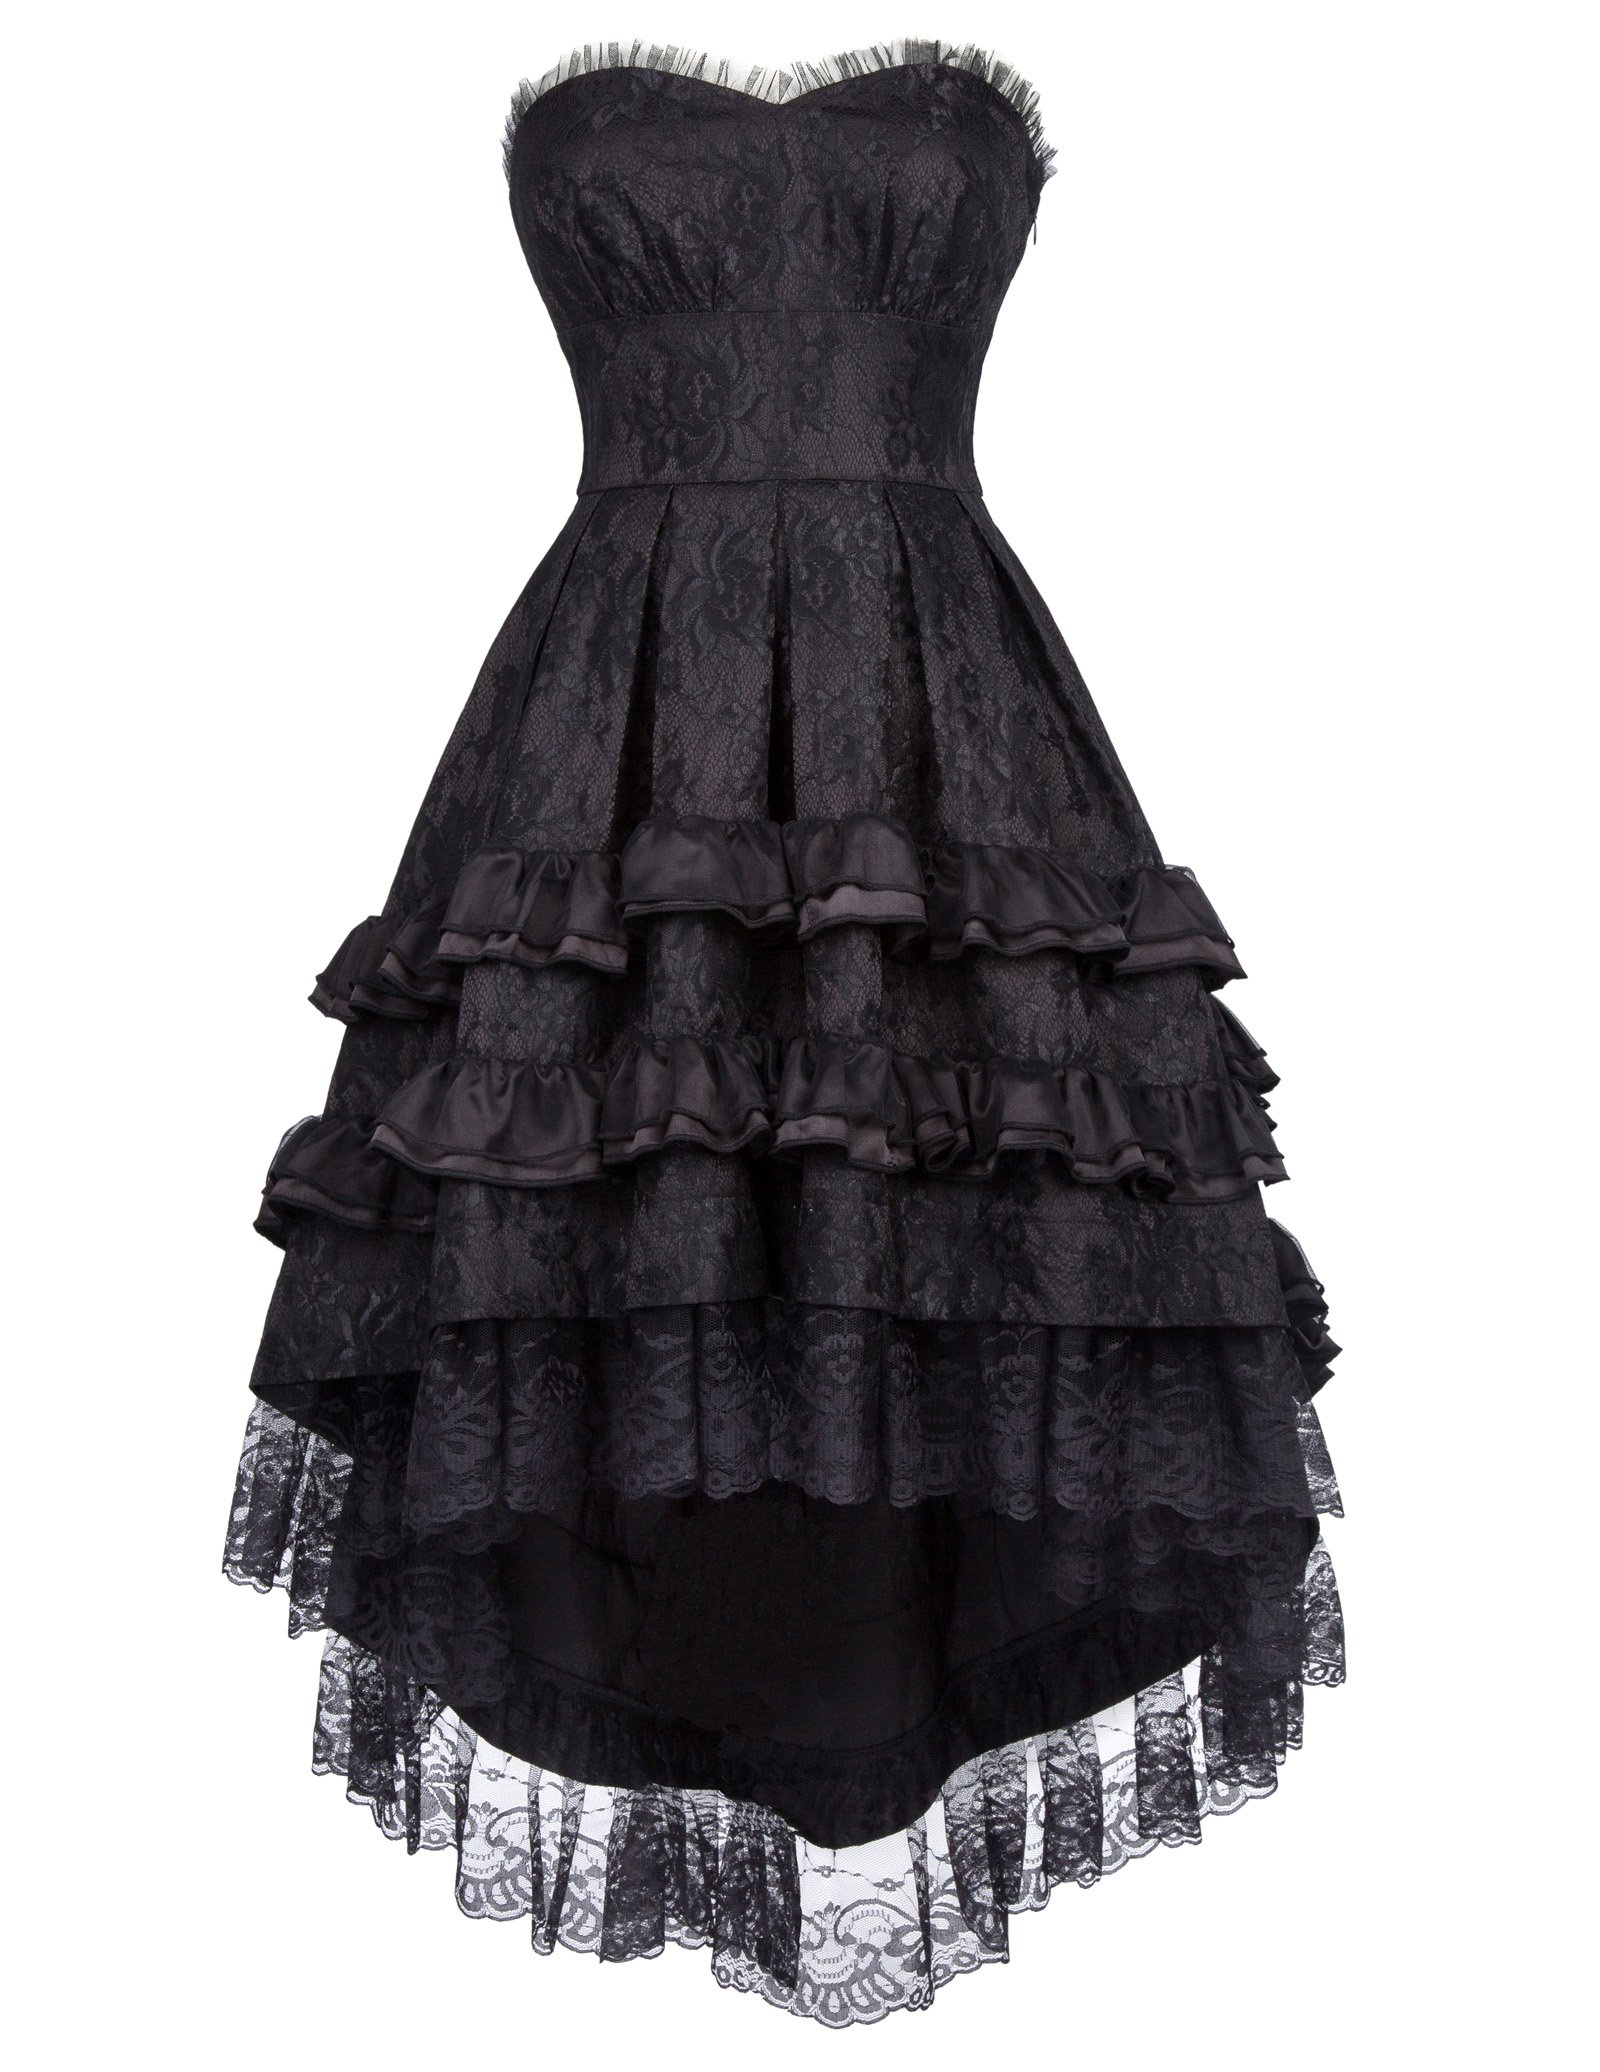 Belle Poque Steampunk Gothic Victorian Strapless Swallow Tail Dovetail Dress BP000346 3